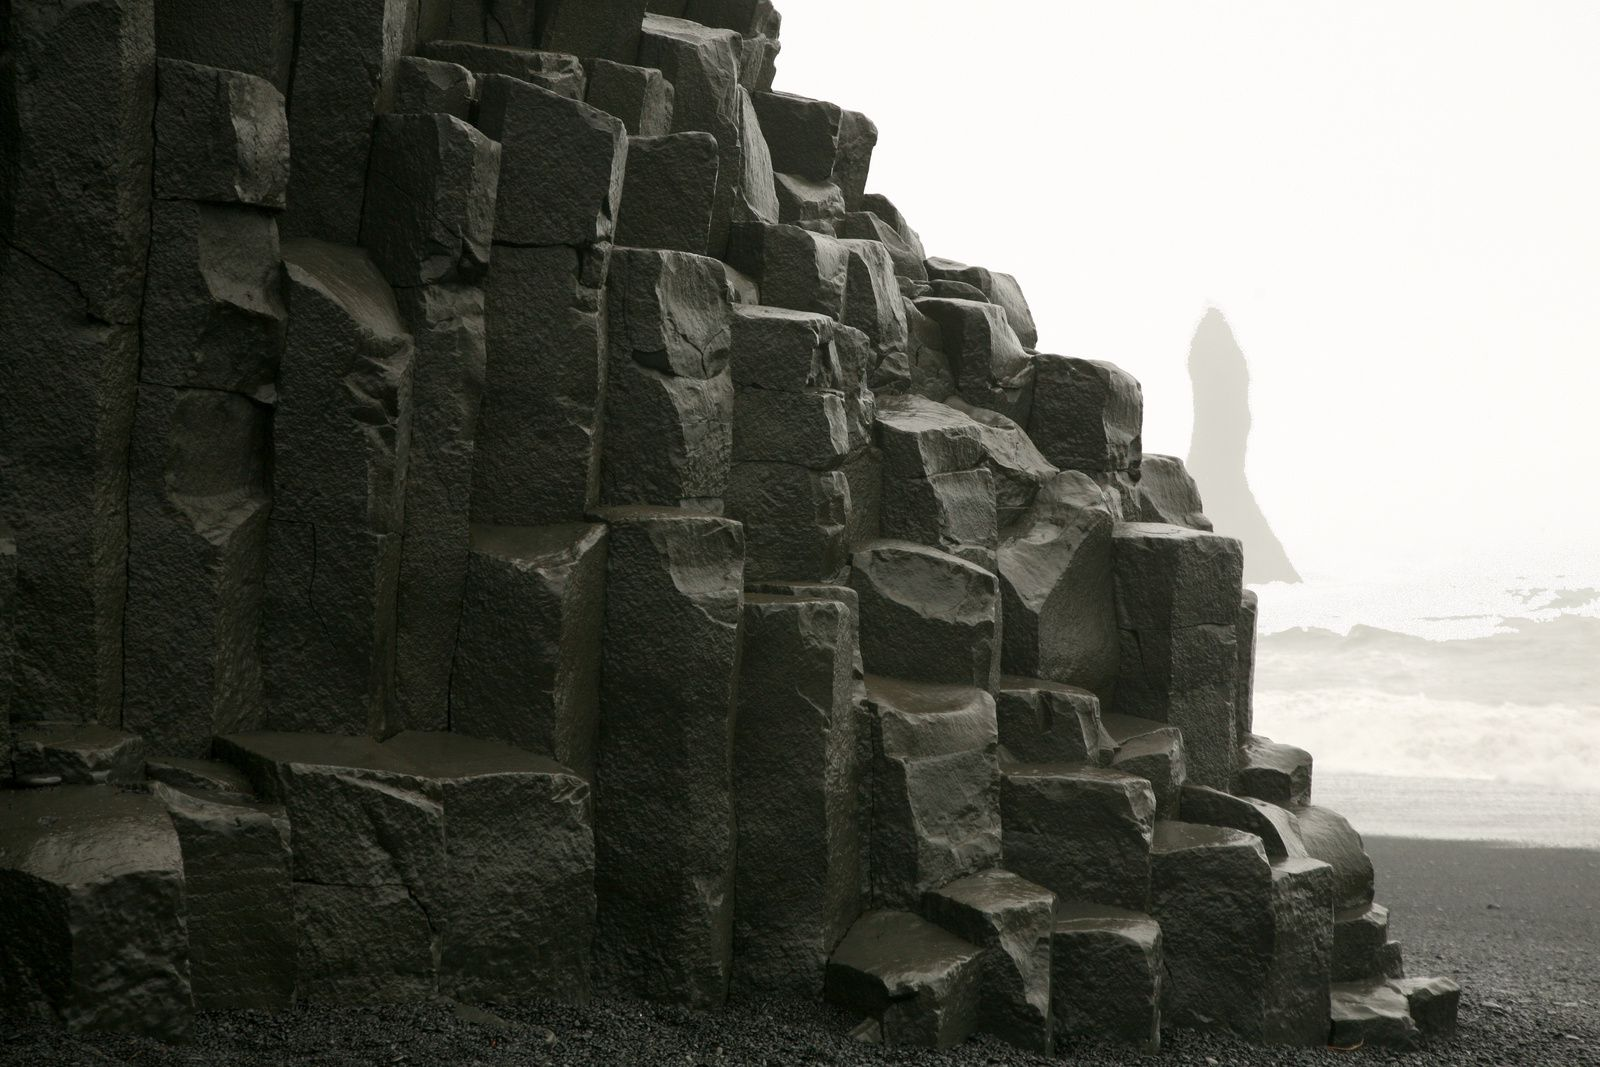 The organs of Reynisfjara - photo © 2015 Bernard Duyck